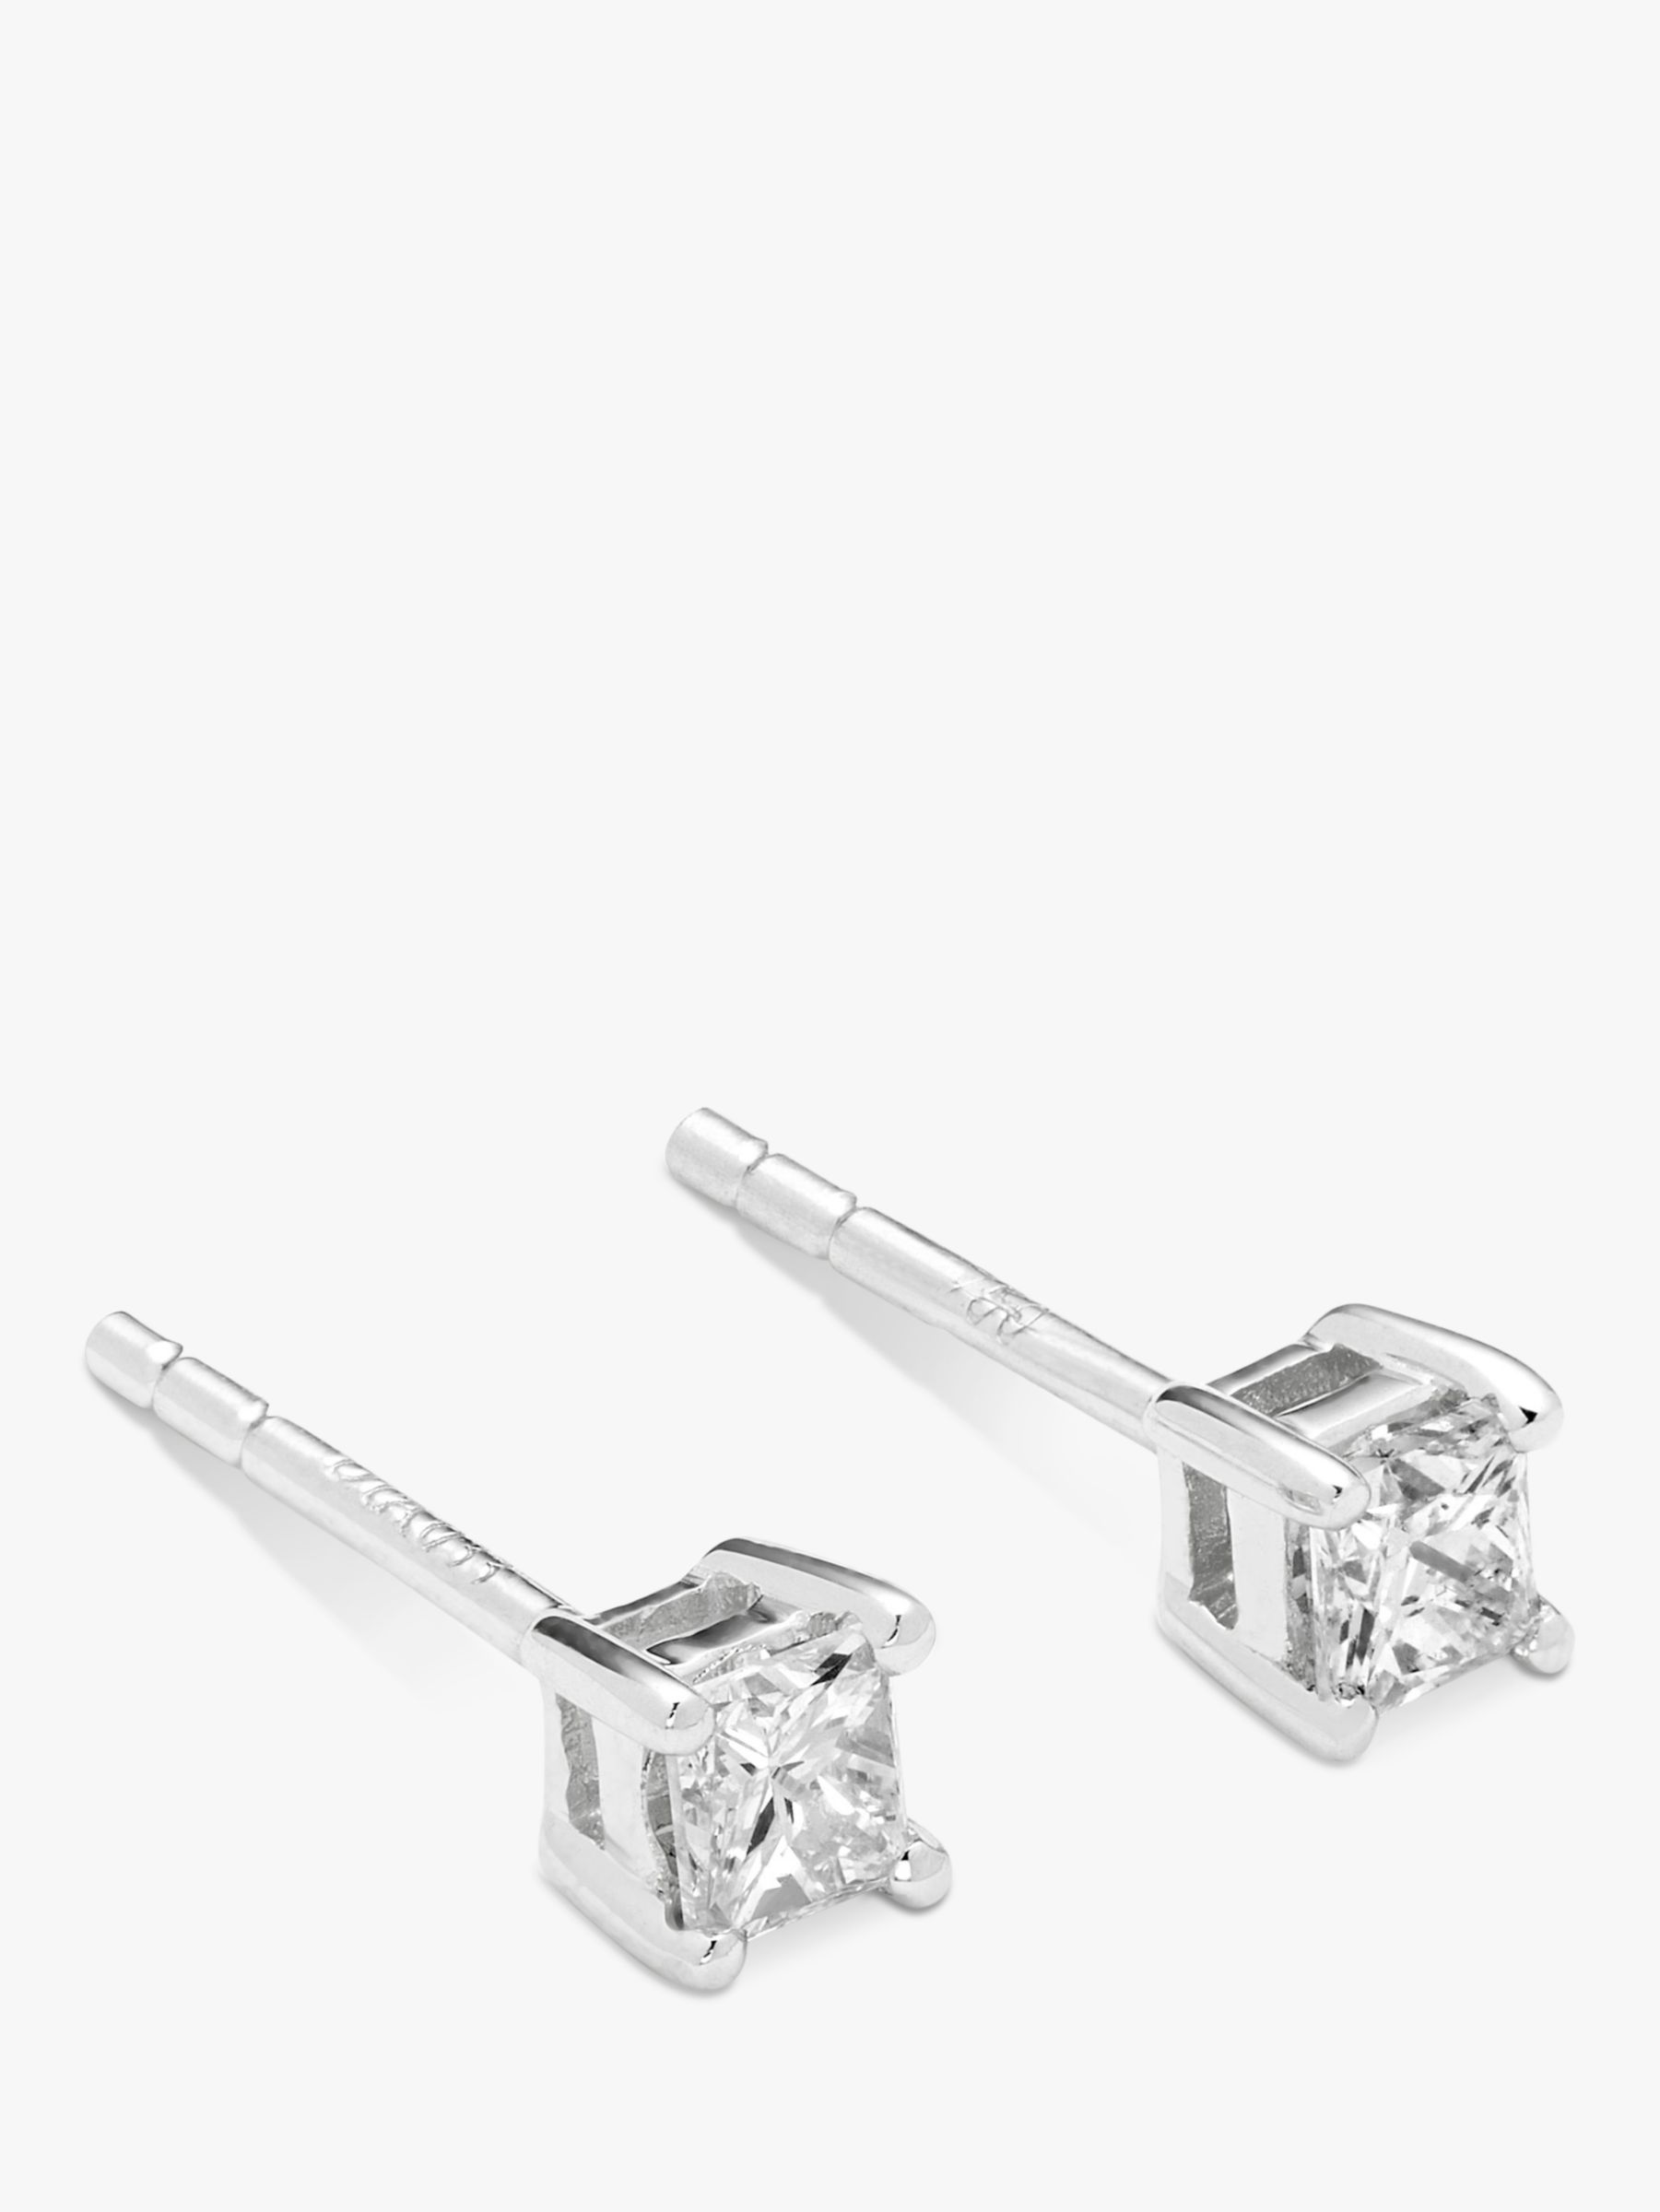 solitaire imageid stud diamond earrings wholesale undefined recipeid in profileid club product platinum imageservice round carat bjs